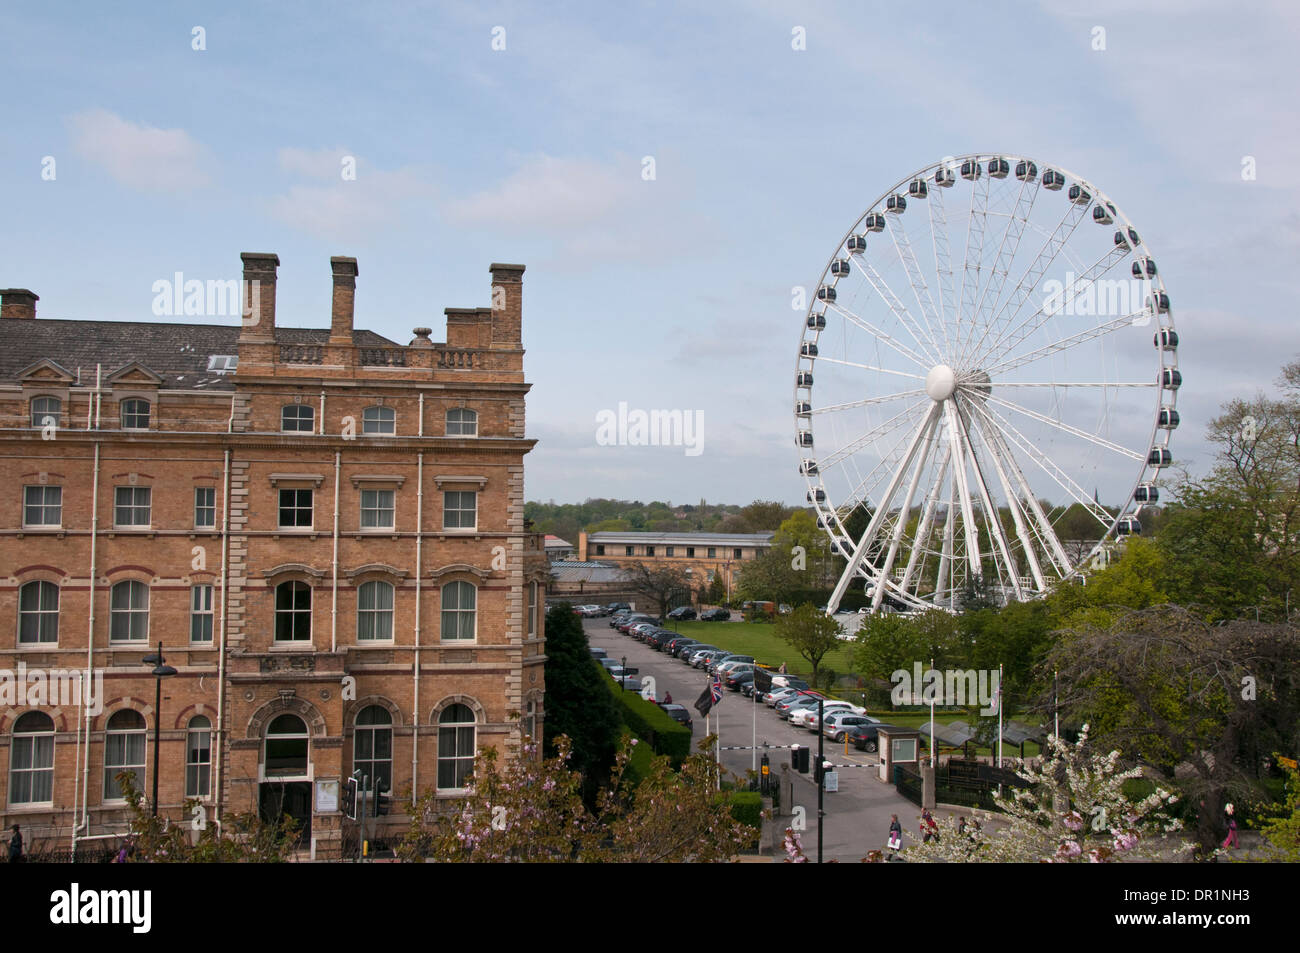 Towering York Wheel tourist attraction, in grounds of impressive historic hotel, the Royal York (now The Principal) - York, North Yorkshire, England. - Stock Image